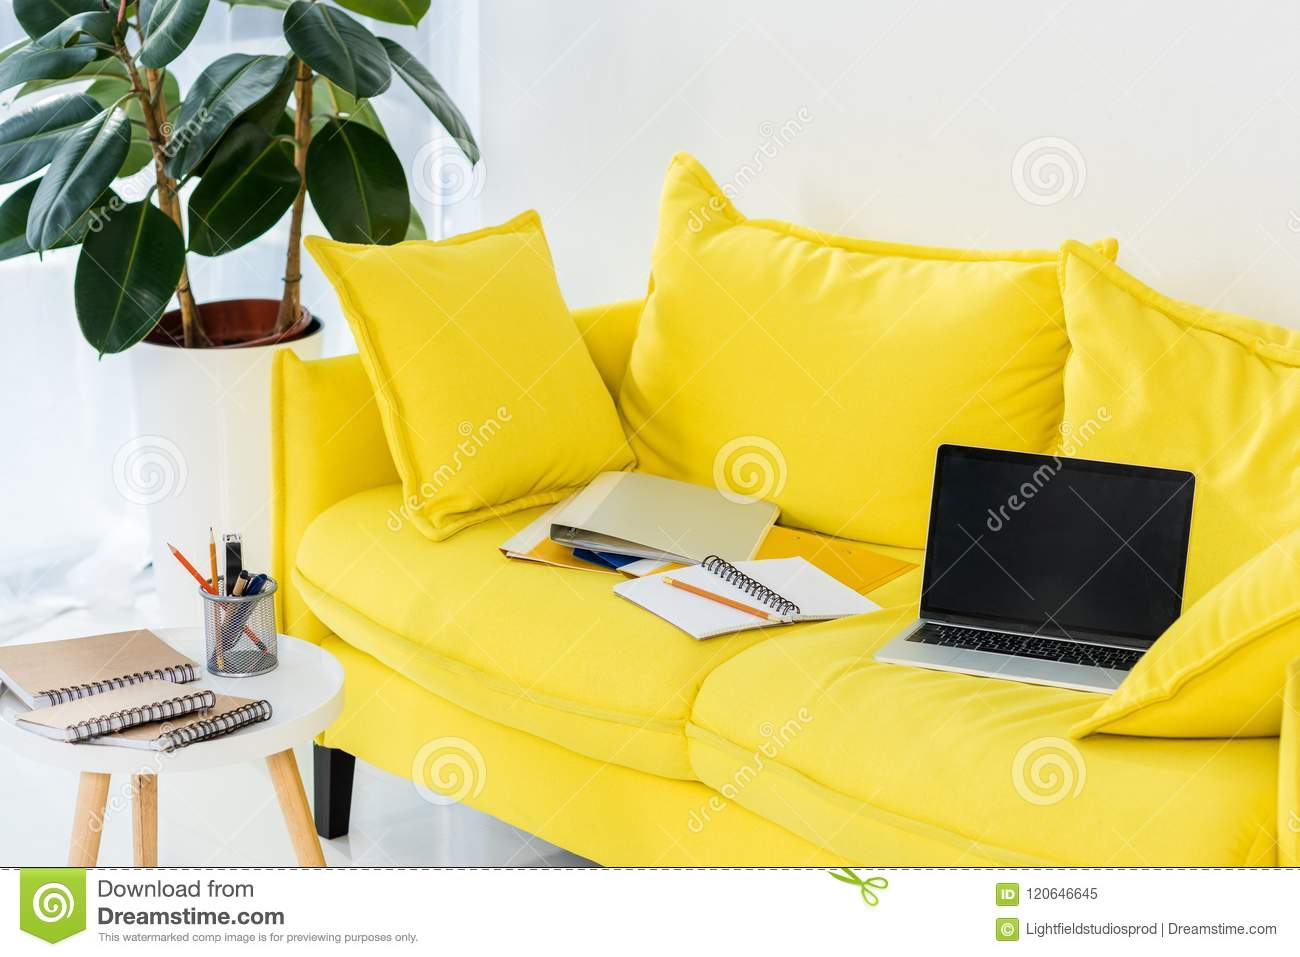 close up view of laptop, notebooks and folders on yellow sofa